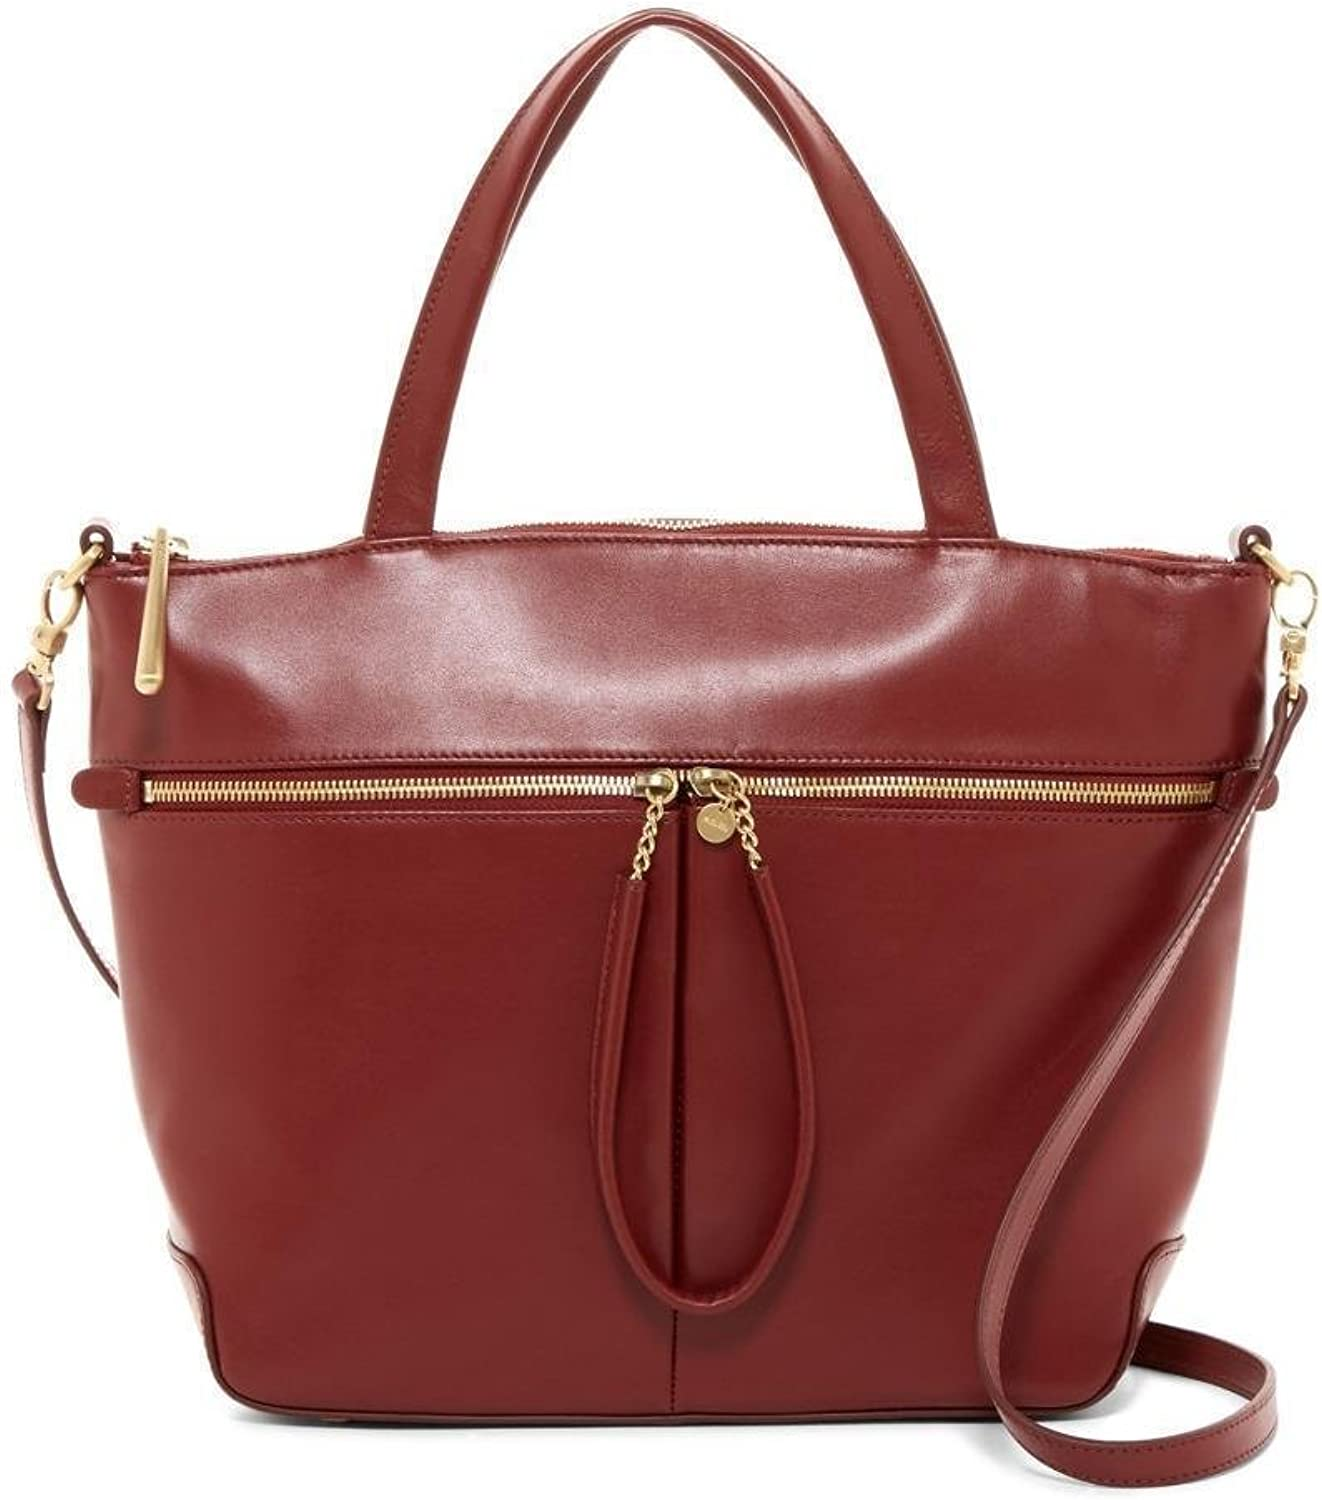 Hobo International Perfect Union Tote Wine Leather Satchel